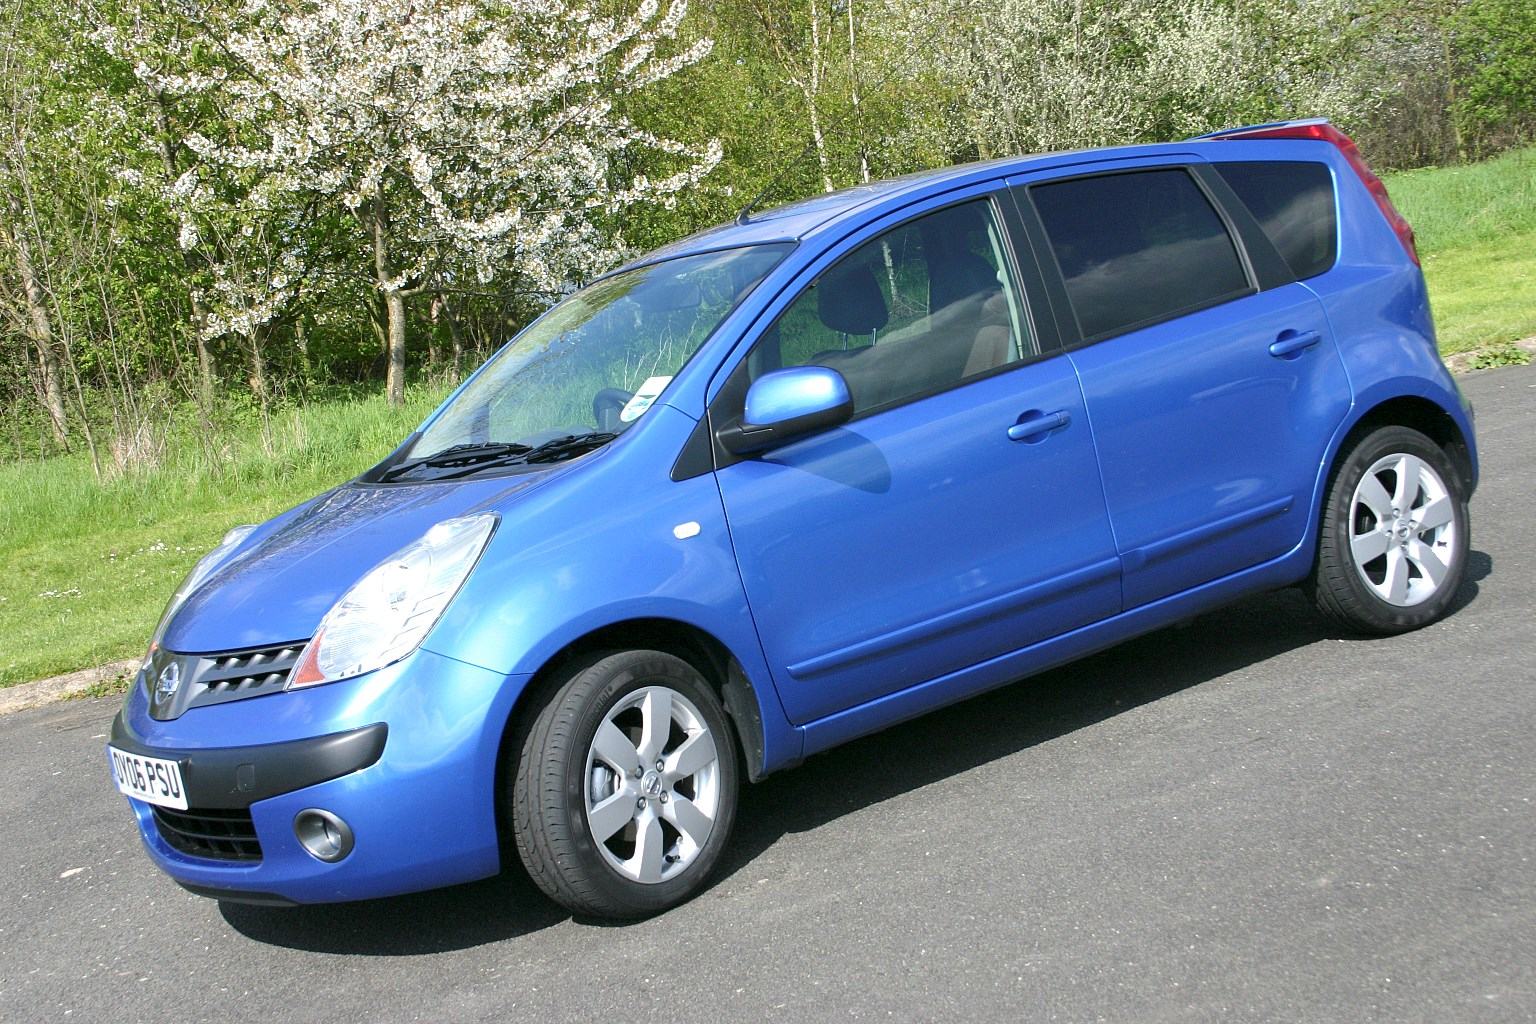 nissan note hatchback review 2006 2013 parkers. Black Bedroom Furniture Sets. Home Design Ideas